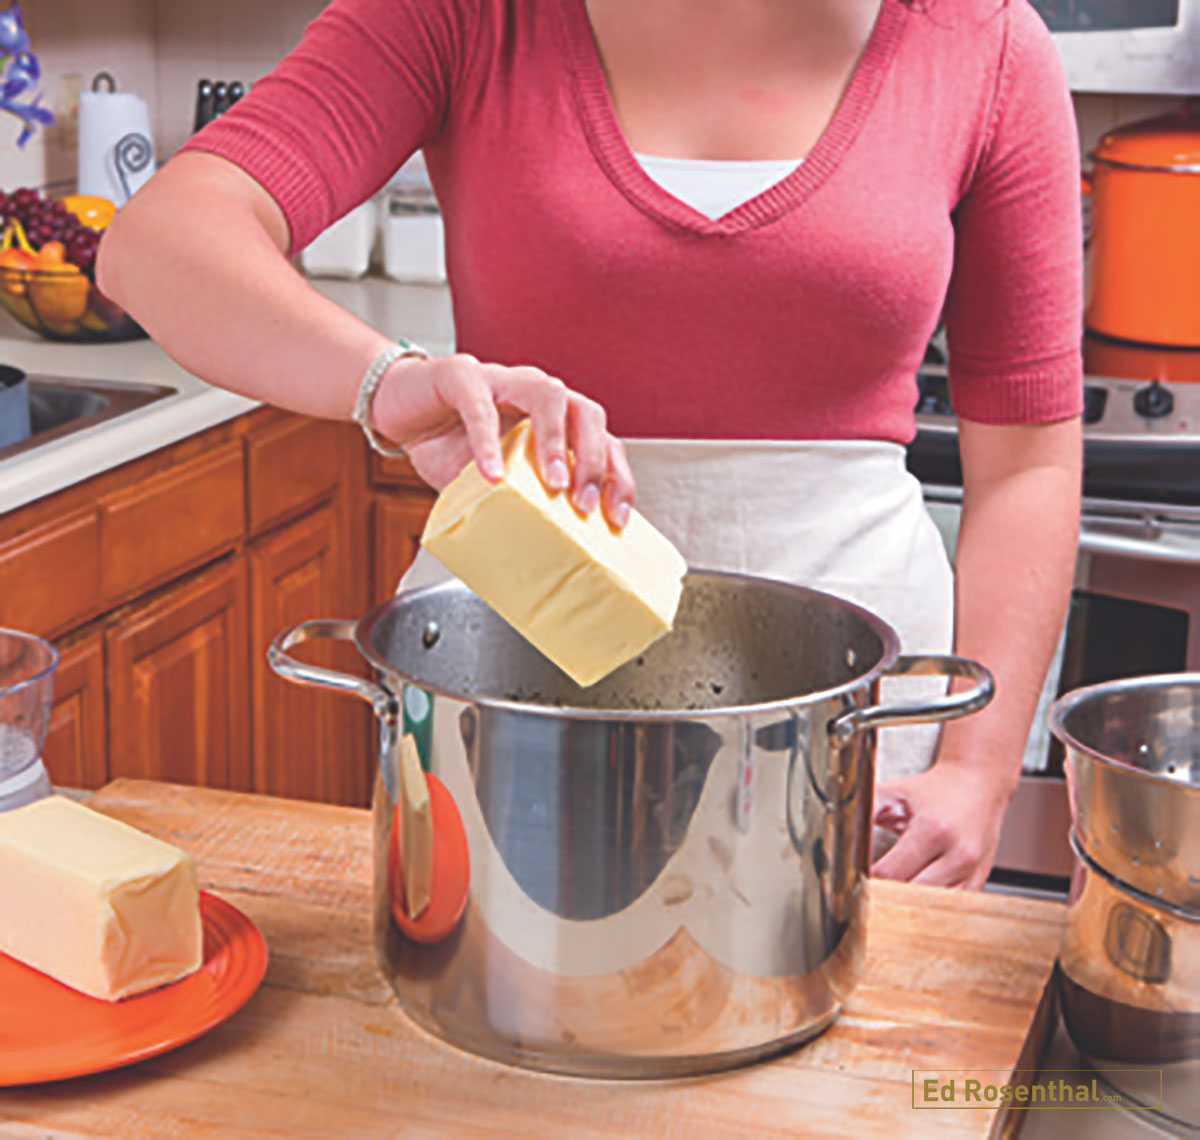 Putting butter into cooking pot